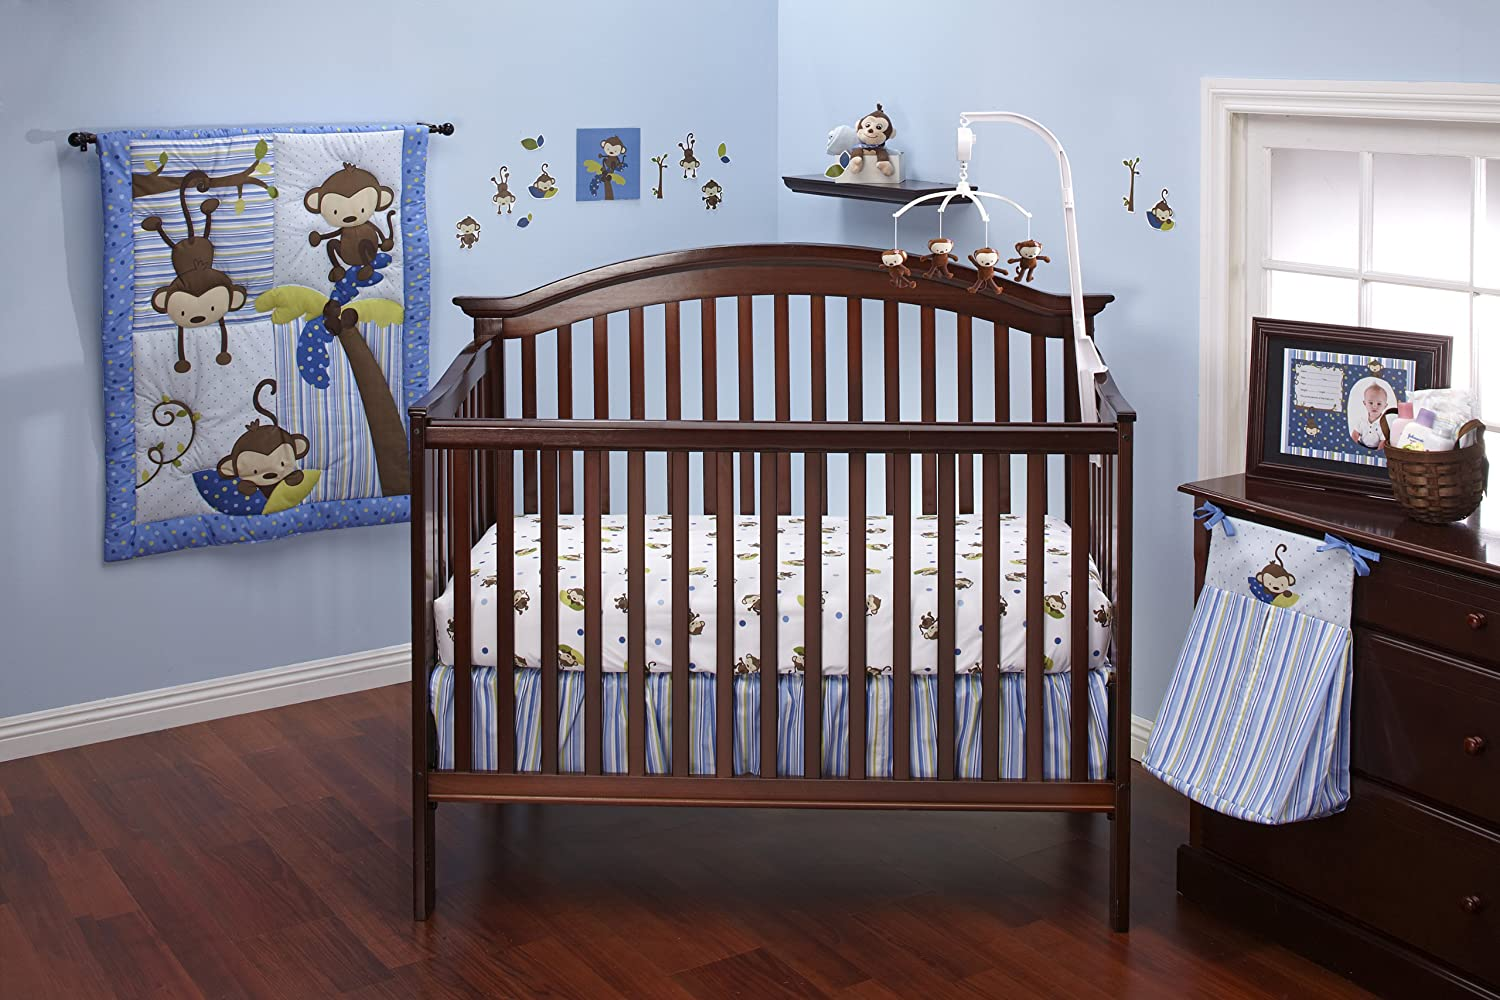 page designs sets boy image bedding canada teen ideas photos breathtaking boys for comforter crib carousel nursery baby cribs